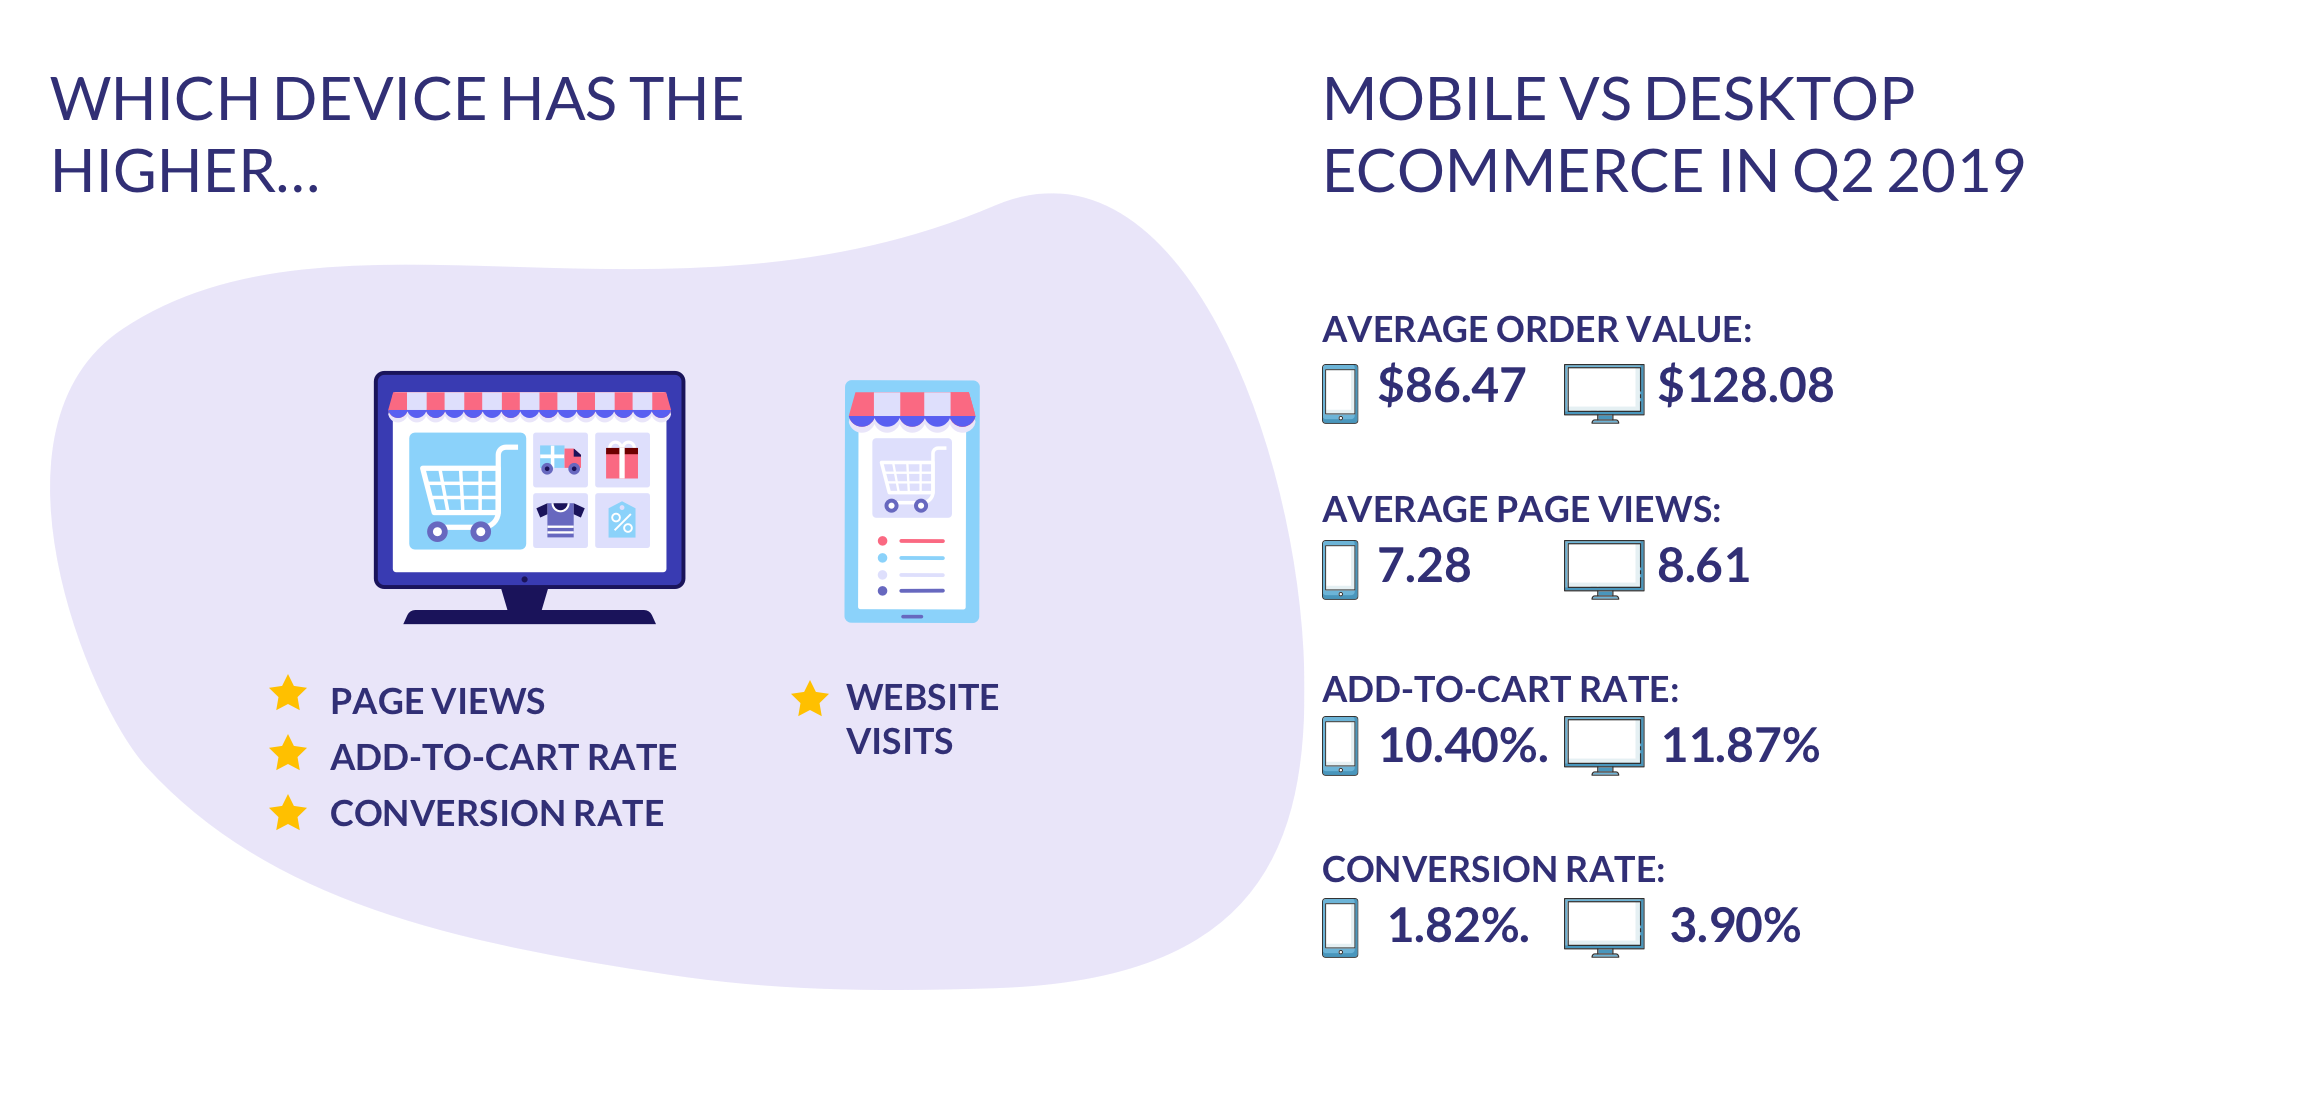 mobile vs desktop ecommerce figures